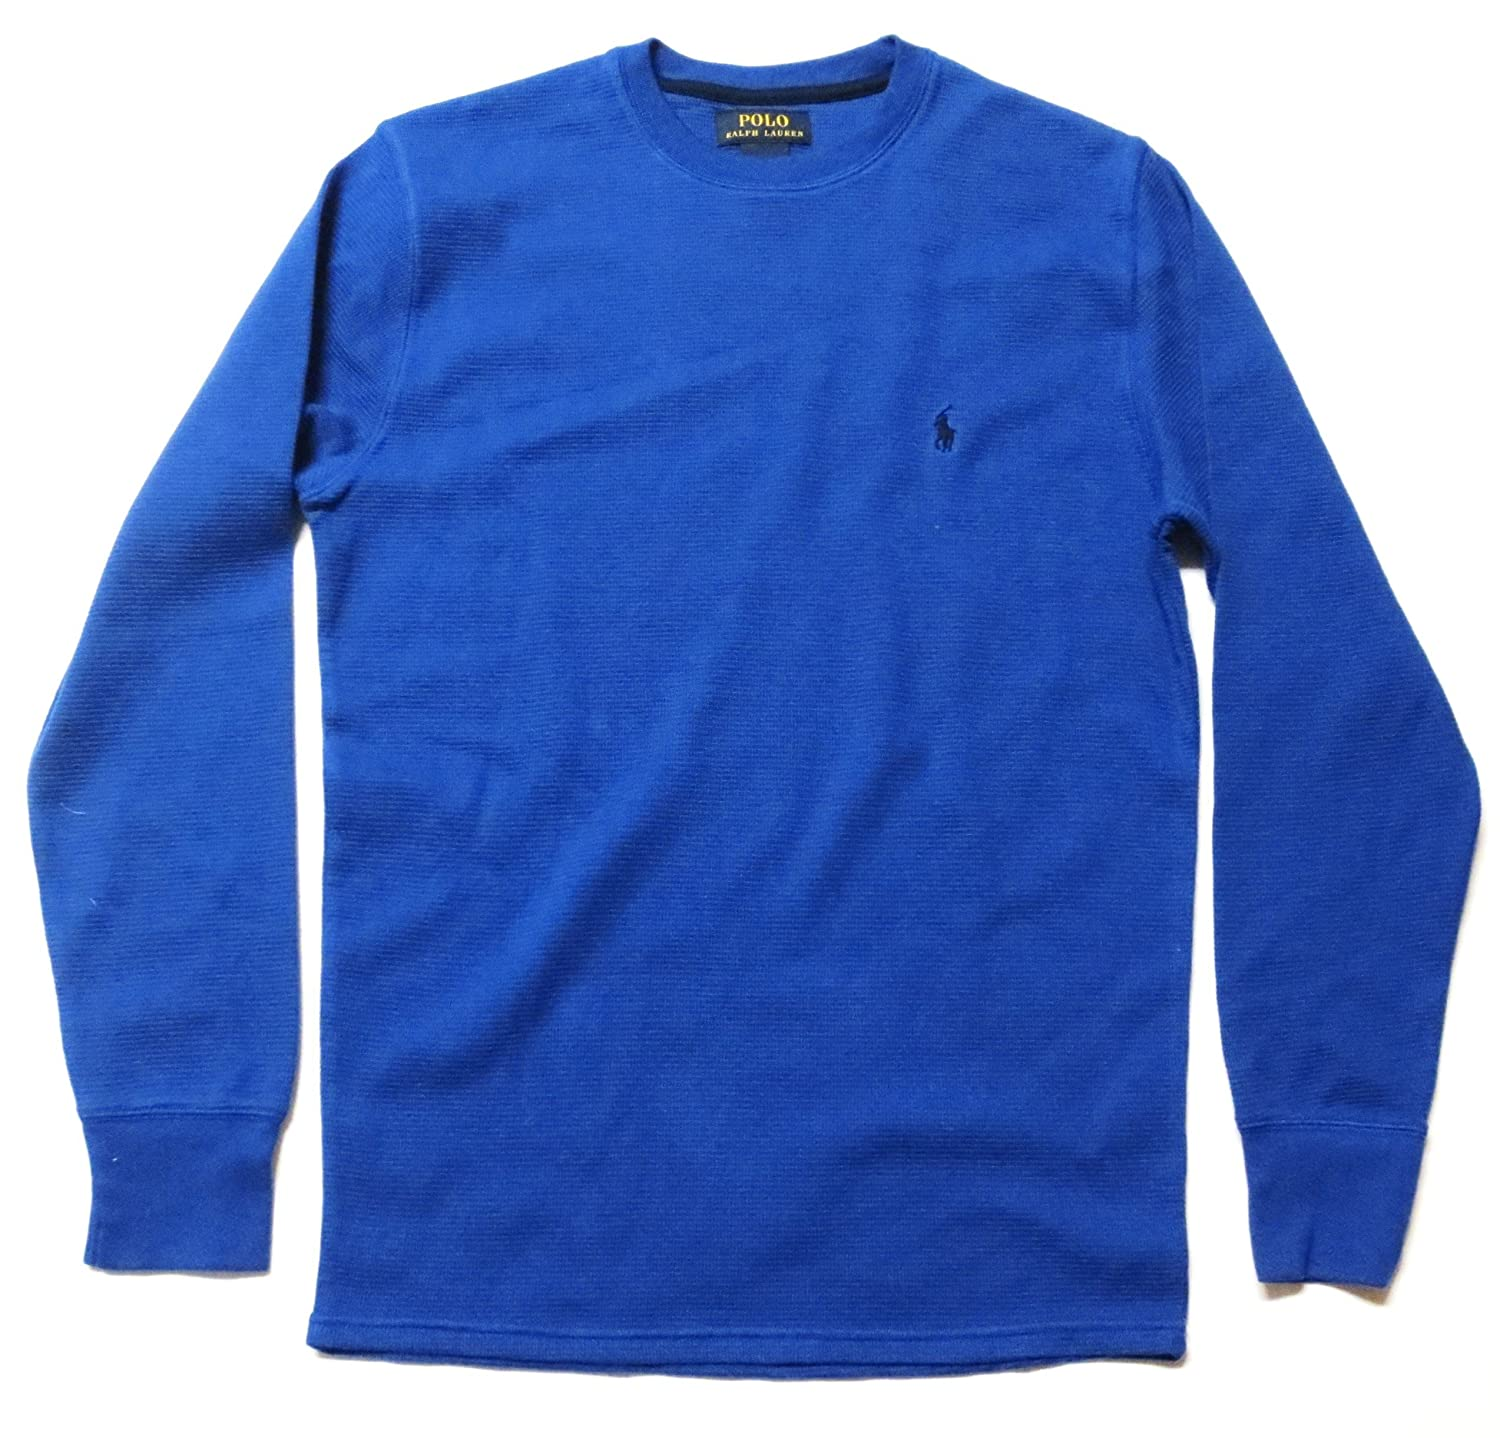 f4fe66260be52 Polo Ralph Lauren Men's Crew Neck Long-sleeved Waffle Knit T-shirt Thermal  - Small, Royal Blue | Amazon.com